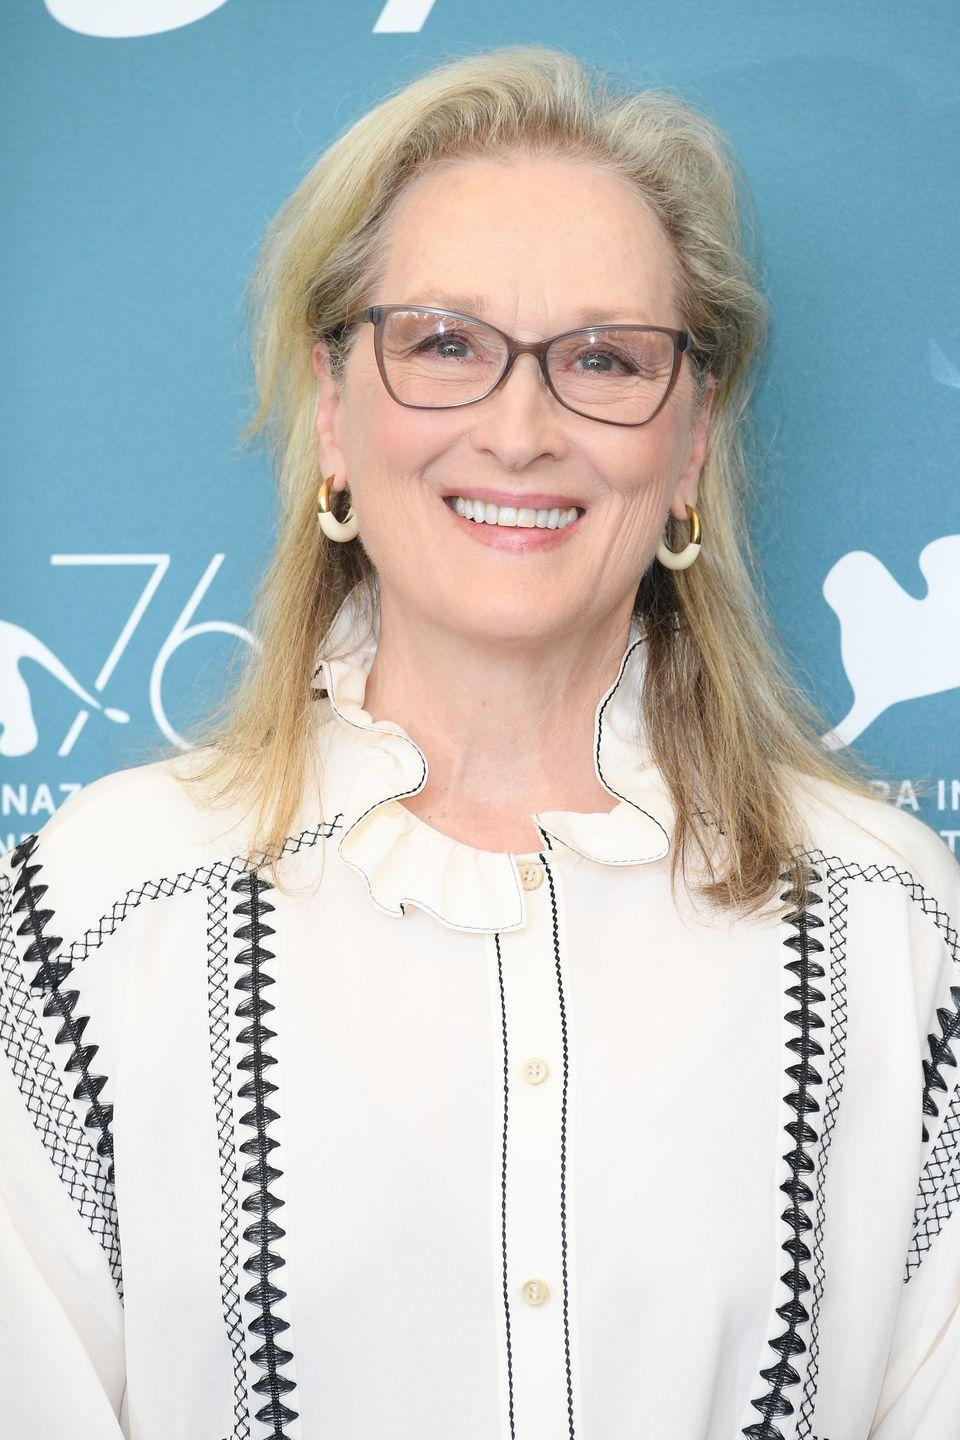 <p>How could SNL not given her hosting duties at some point in her illustrious career? She's <em>Meryl Streep</em>, for goodness sakes! </p>